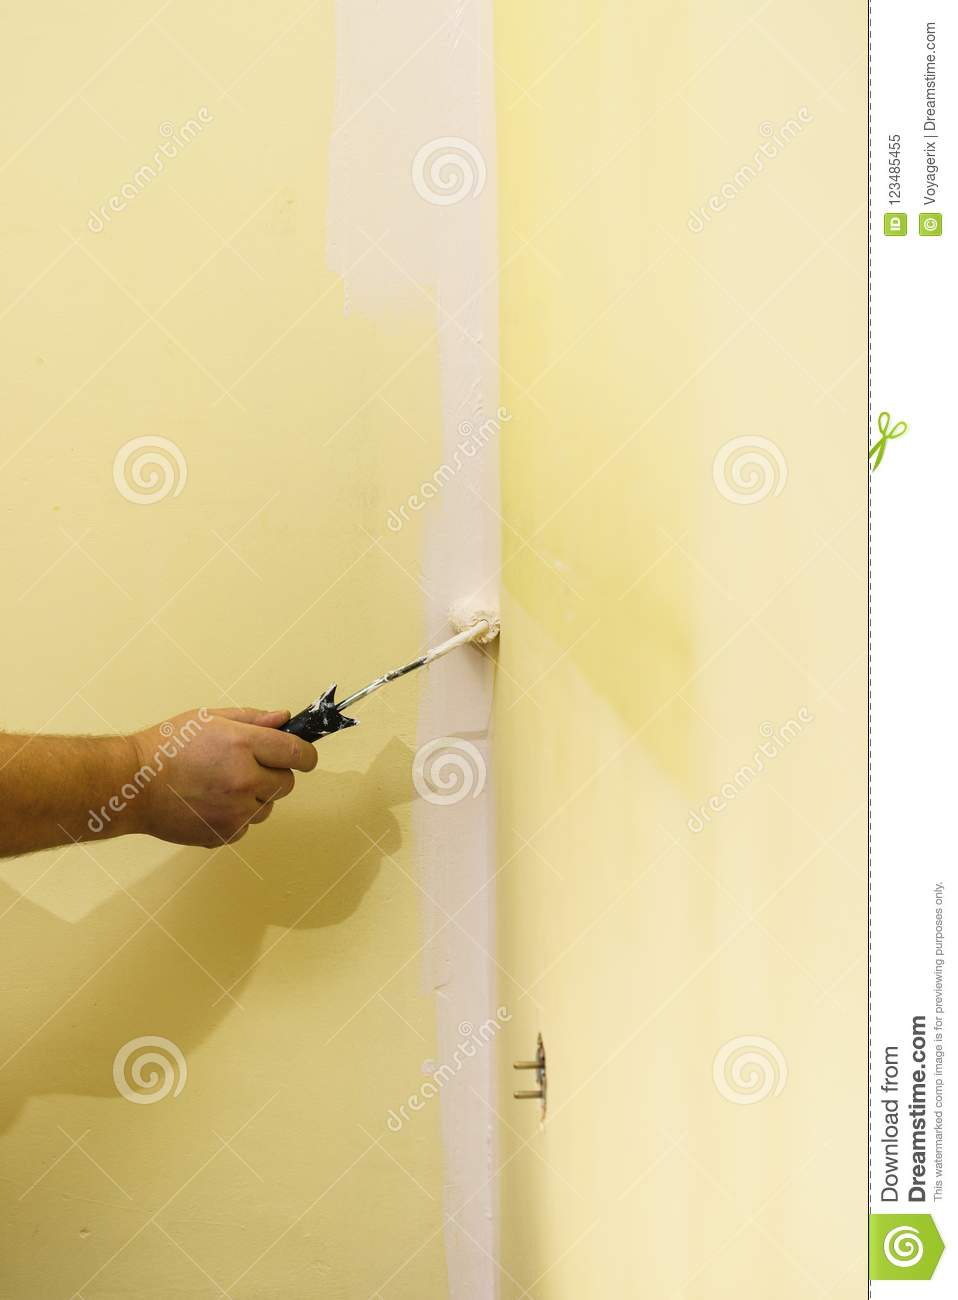 Hand Applying Paint On Wall Stock Image - Image of white, color ...